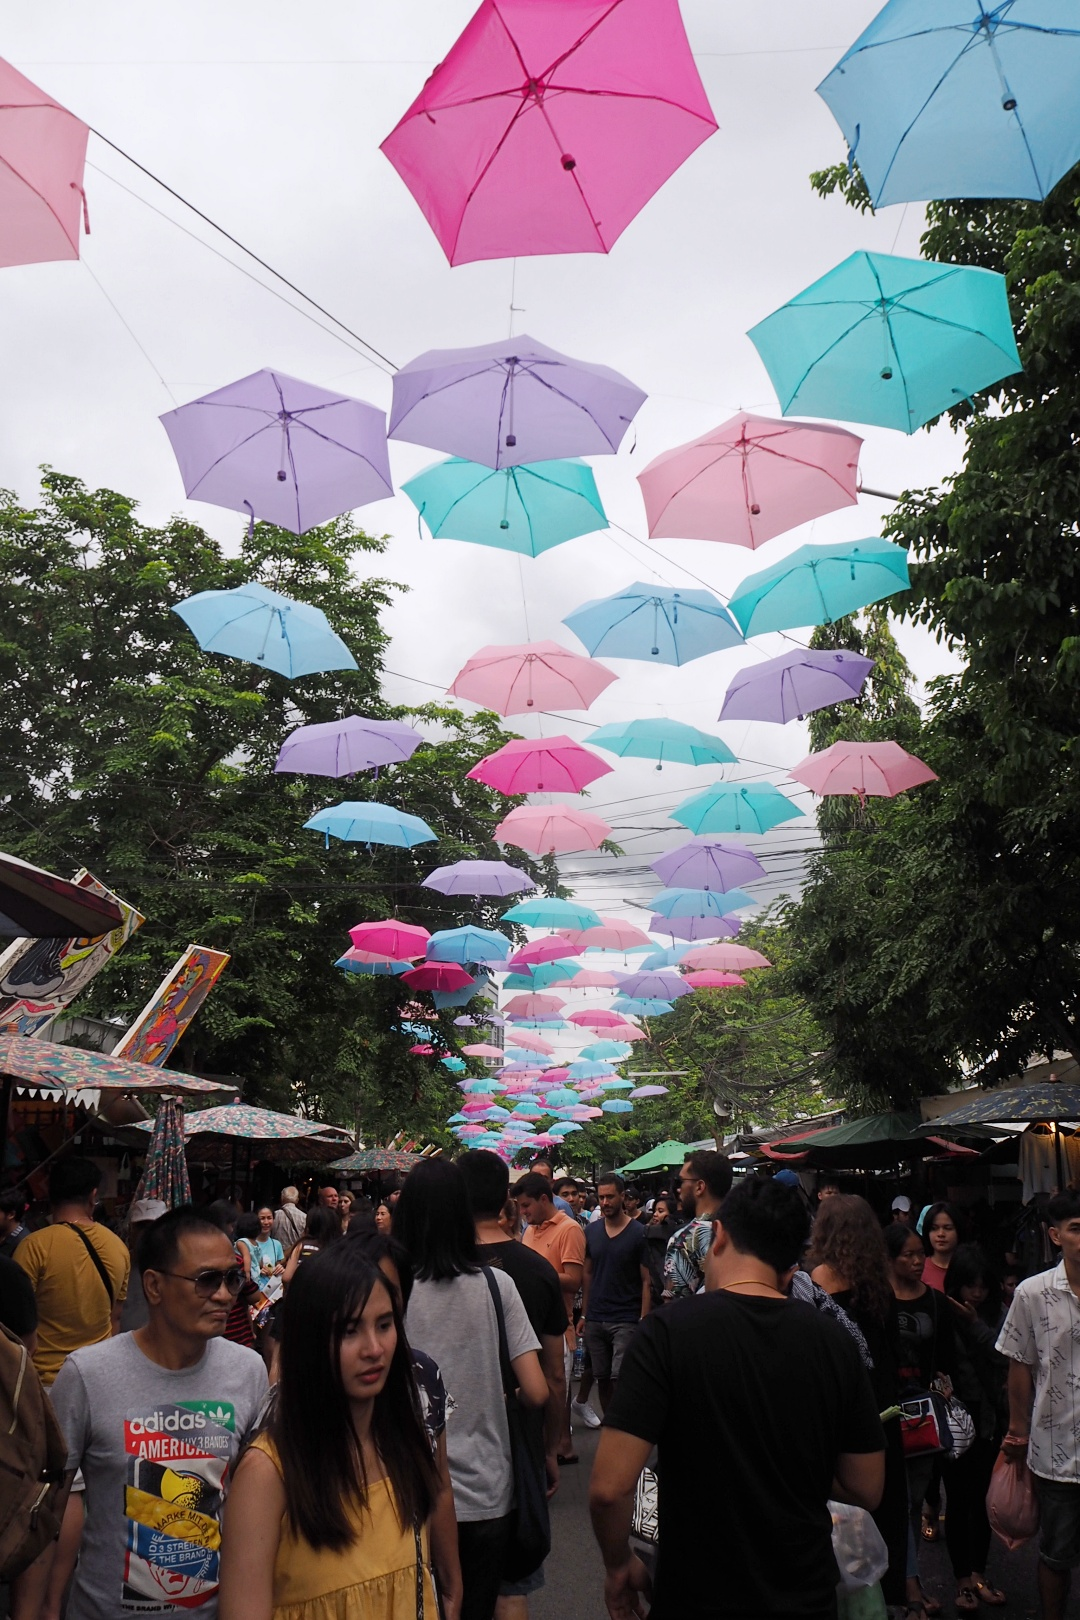 August 2018 Bangkok | Chatuchak Weekend Market | joanne-khoo.com